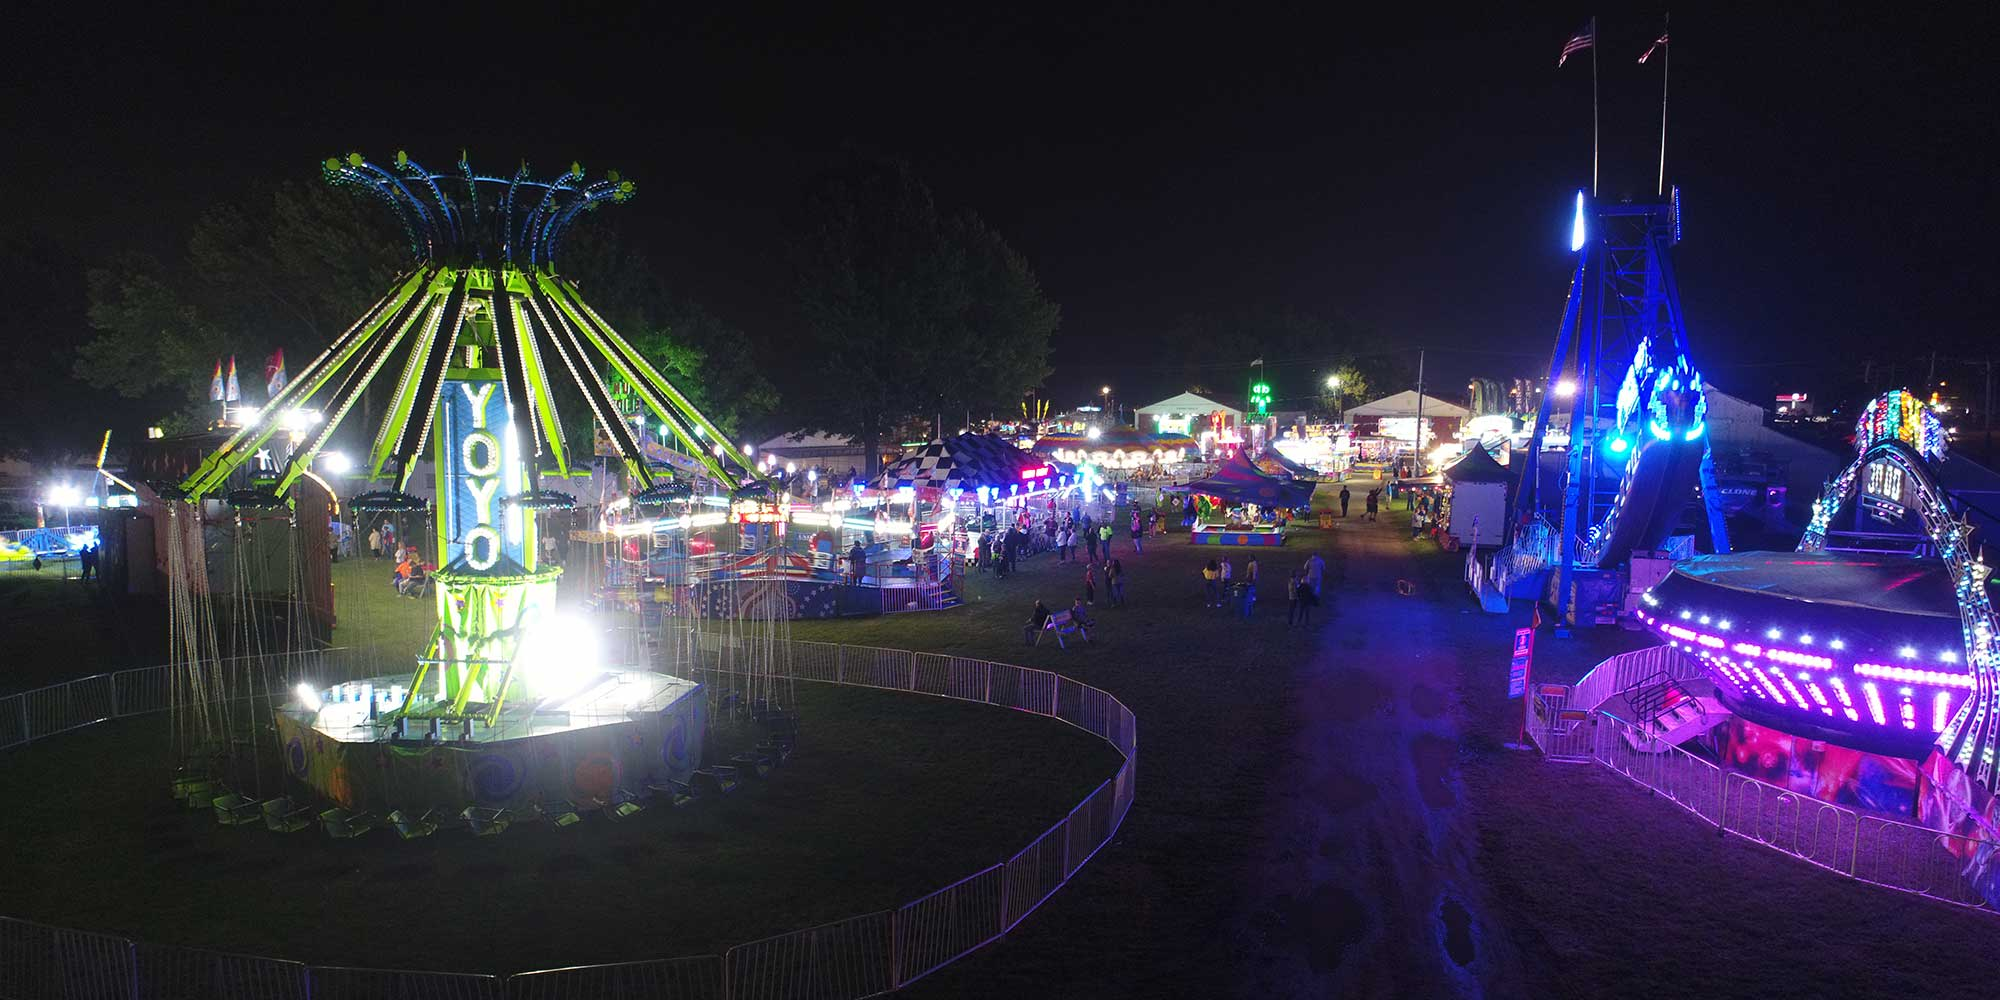 Tri County Fair 2020 Mendota Il.Bureau County Fairgrounds August 26th 30th 2020